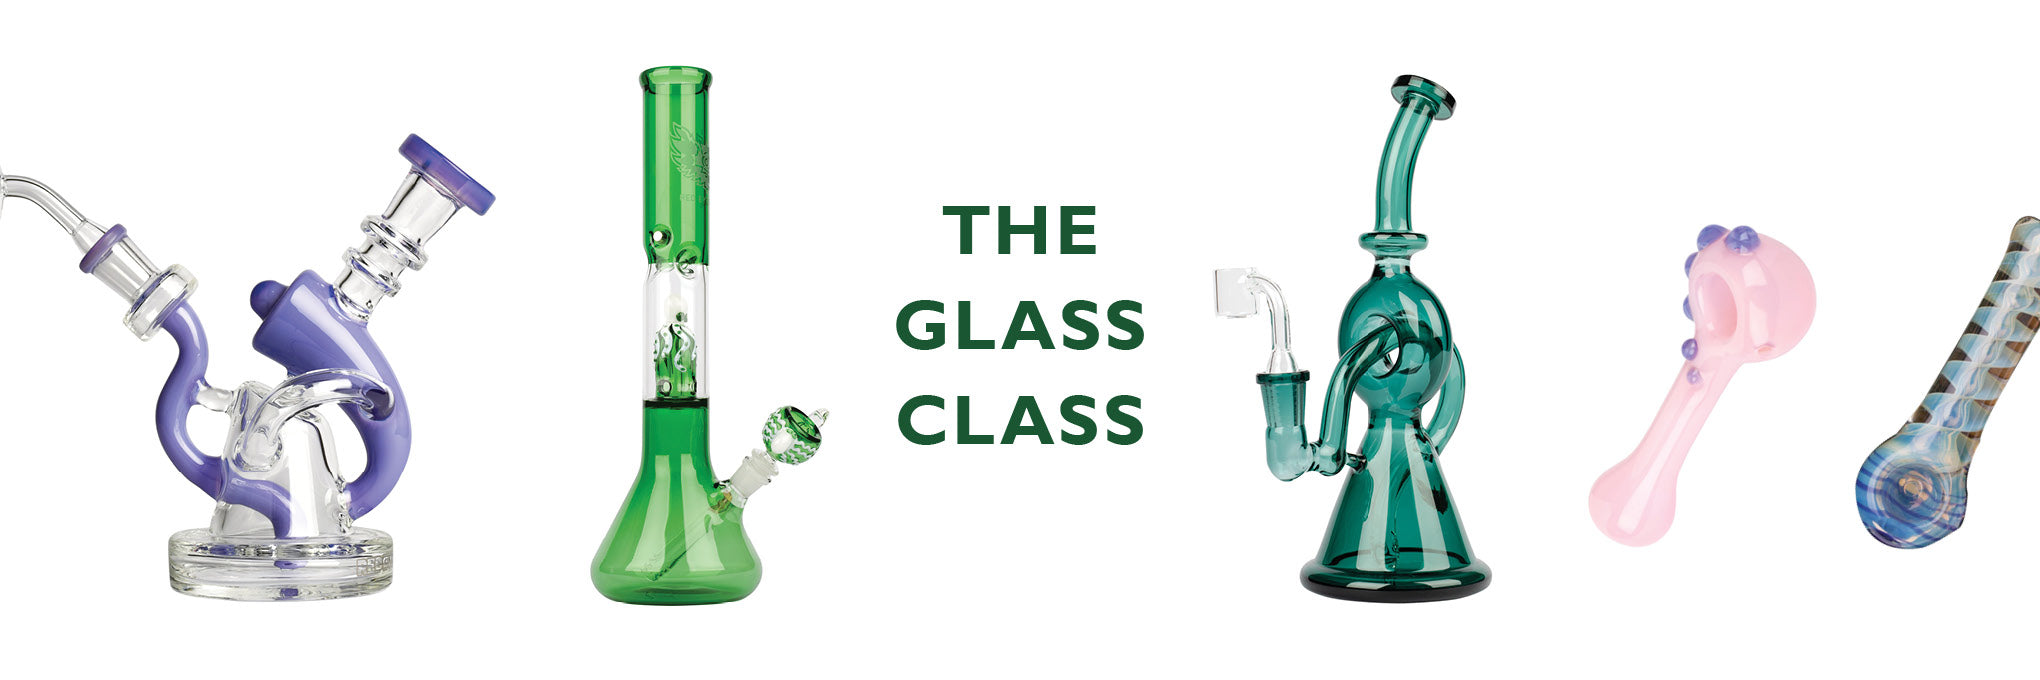 Glass accessories 101